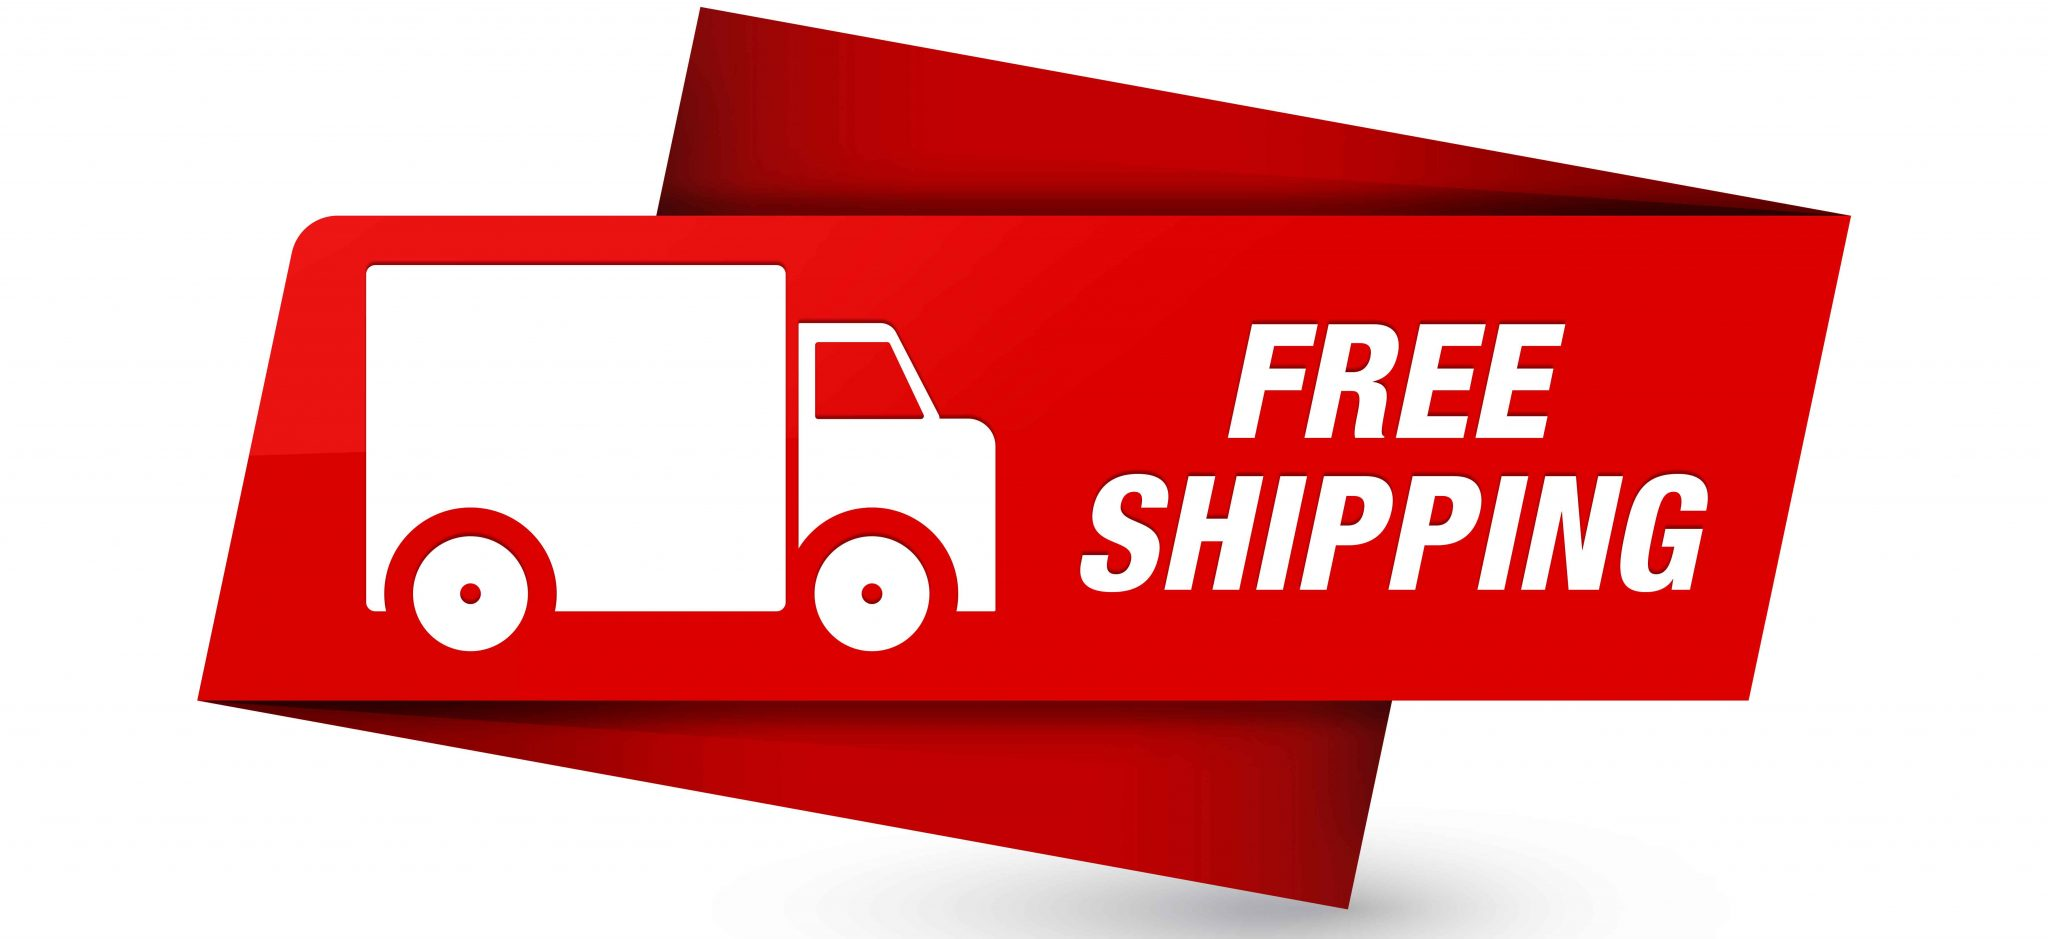 Ecommerce store running a holiday season discount of free shipping